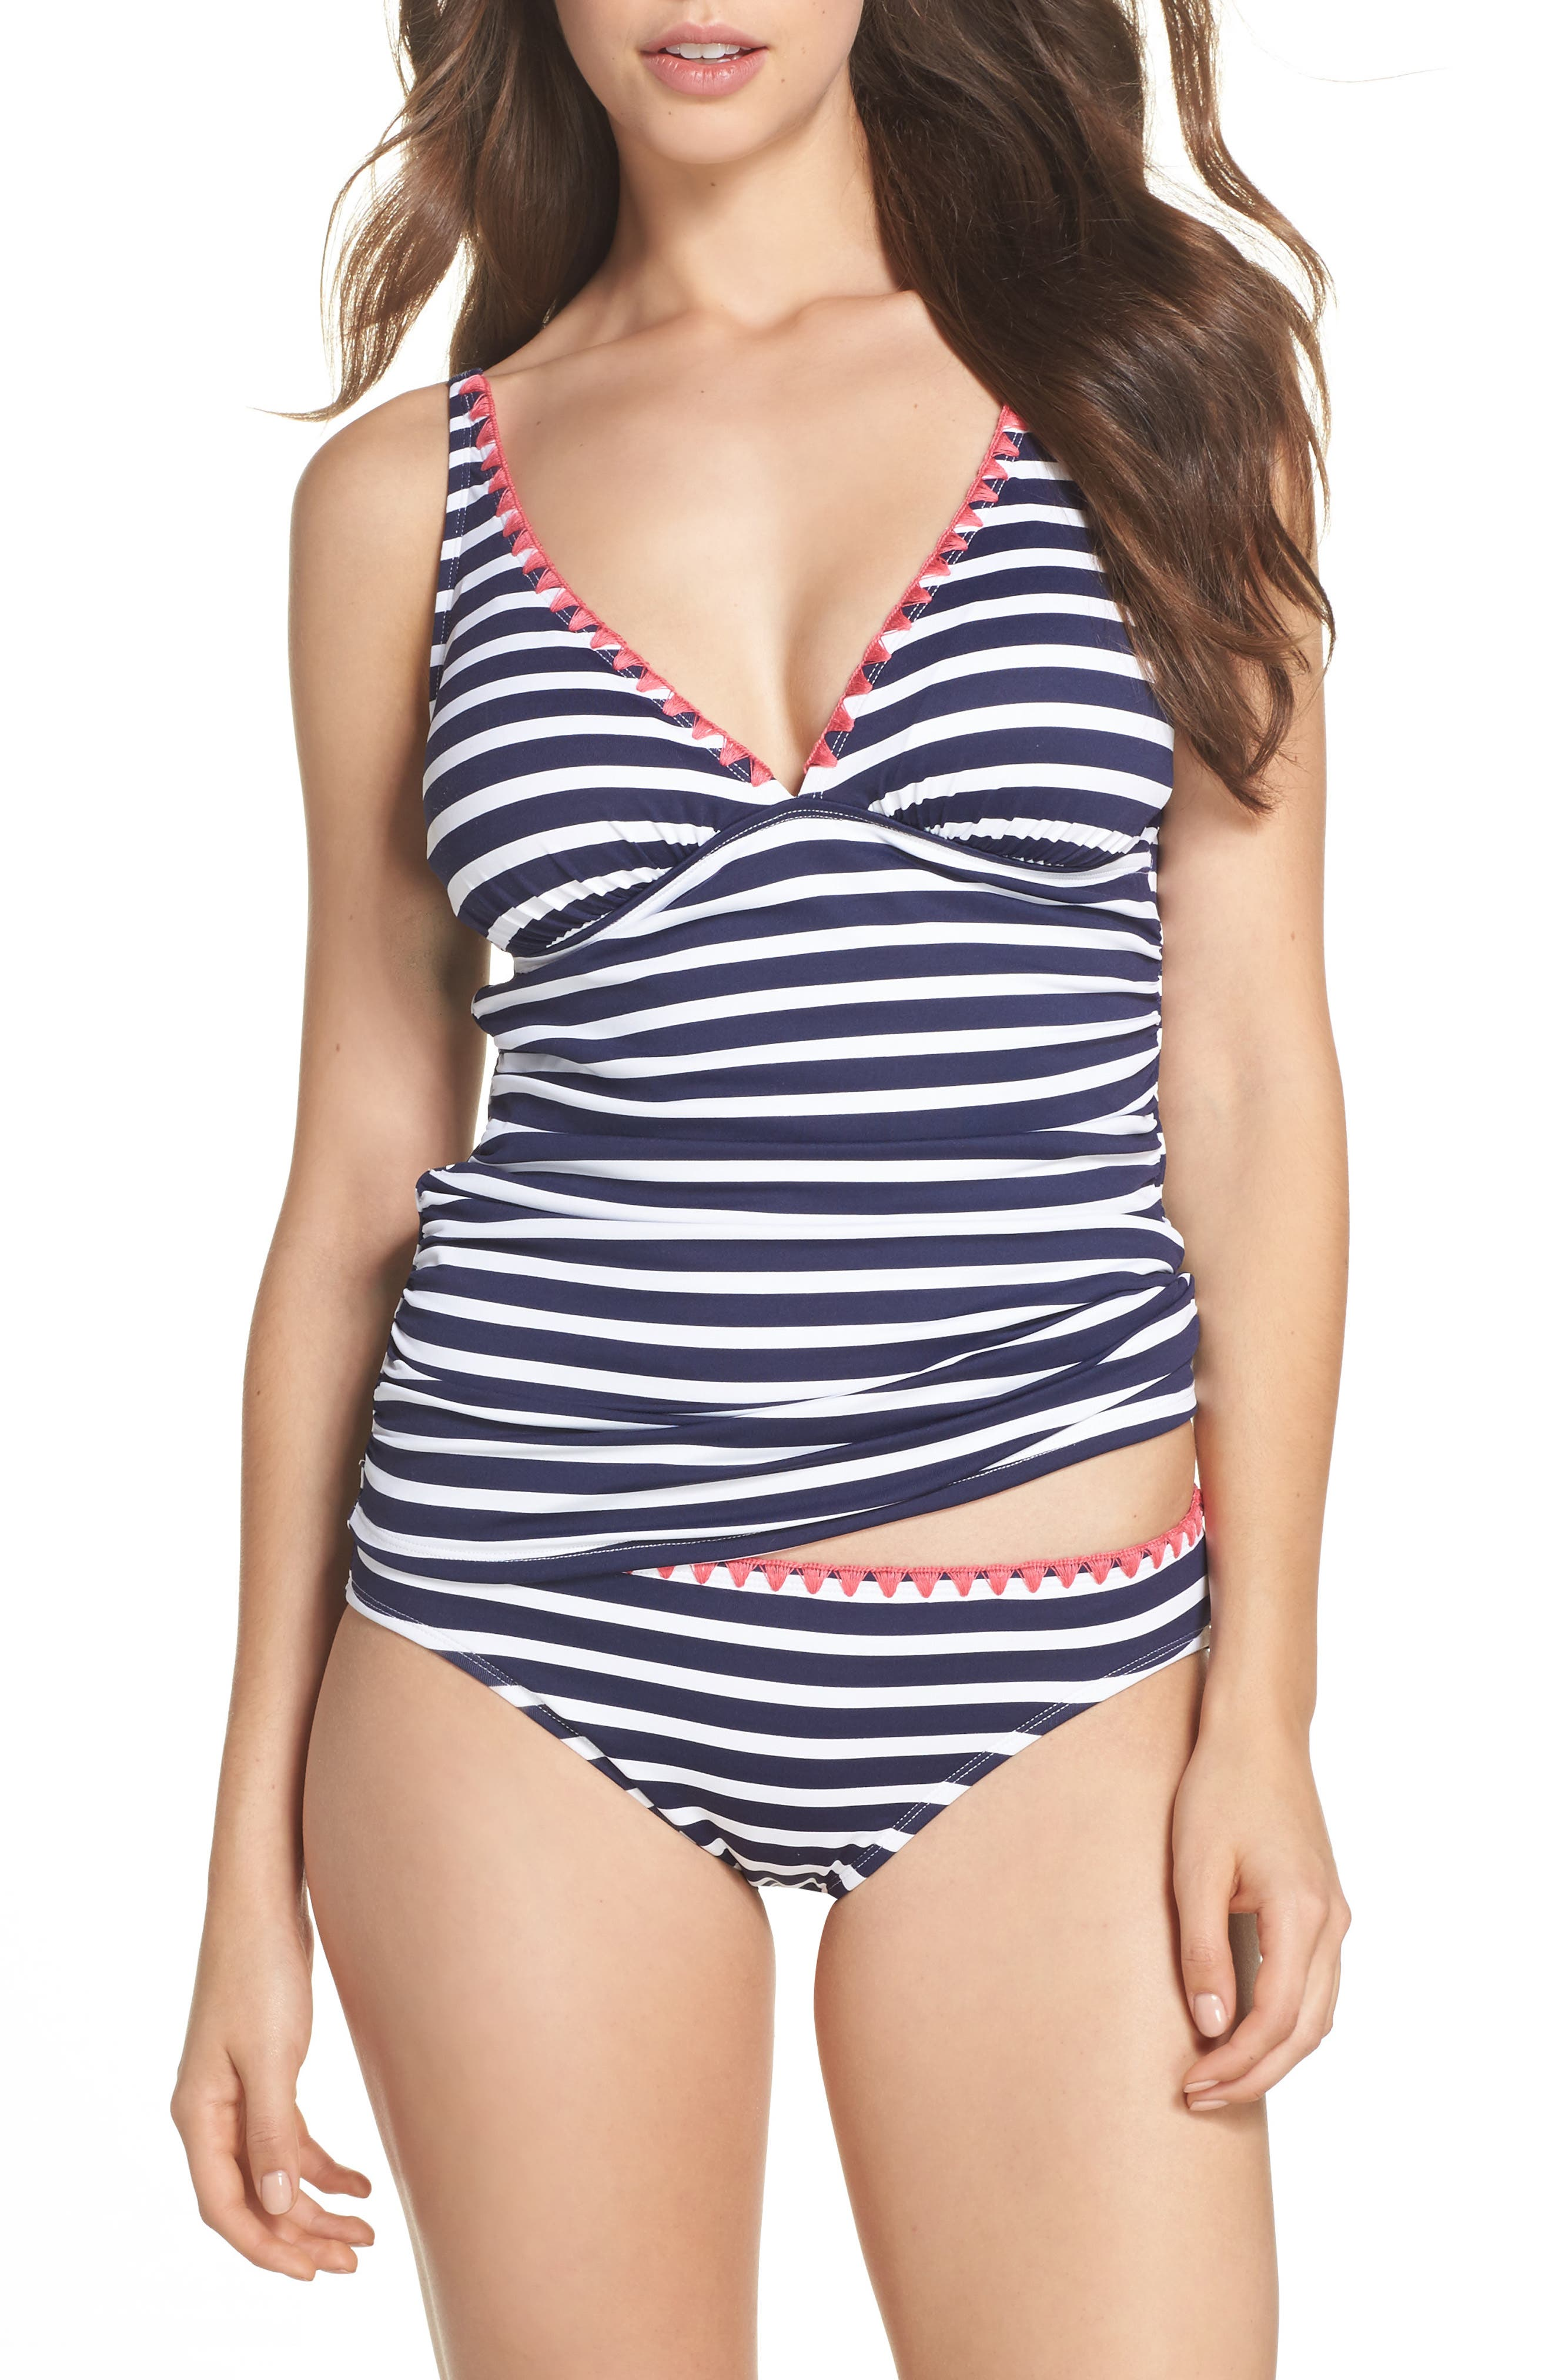 Breton Stripe Tankini Top,                             Alternate thumbnail 7, color,                             Mare Navy/ White